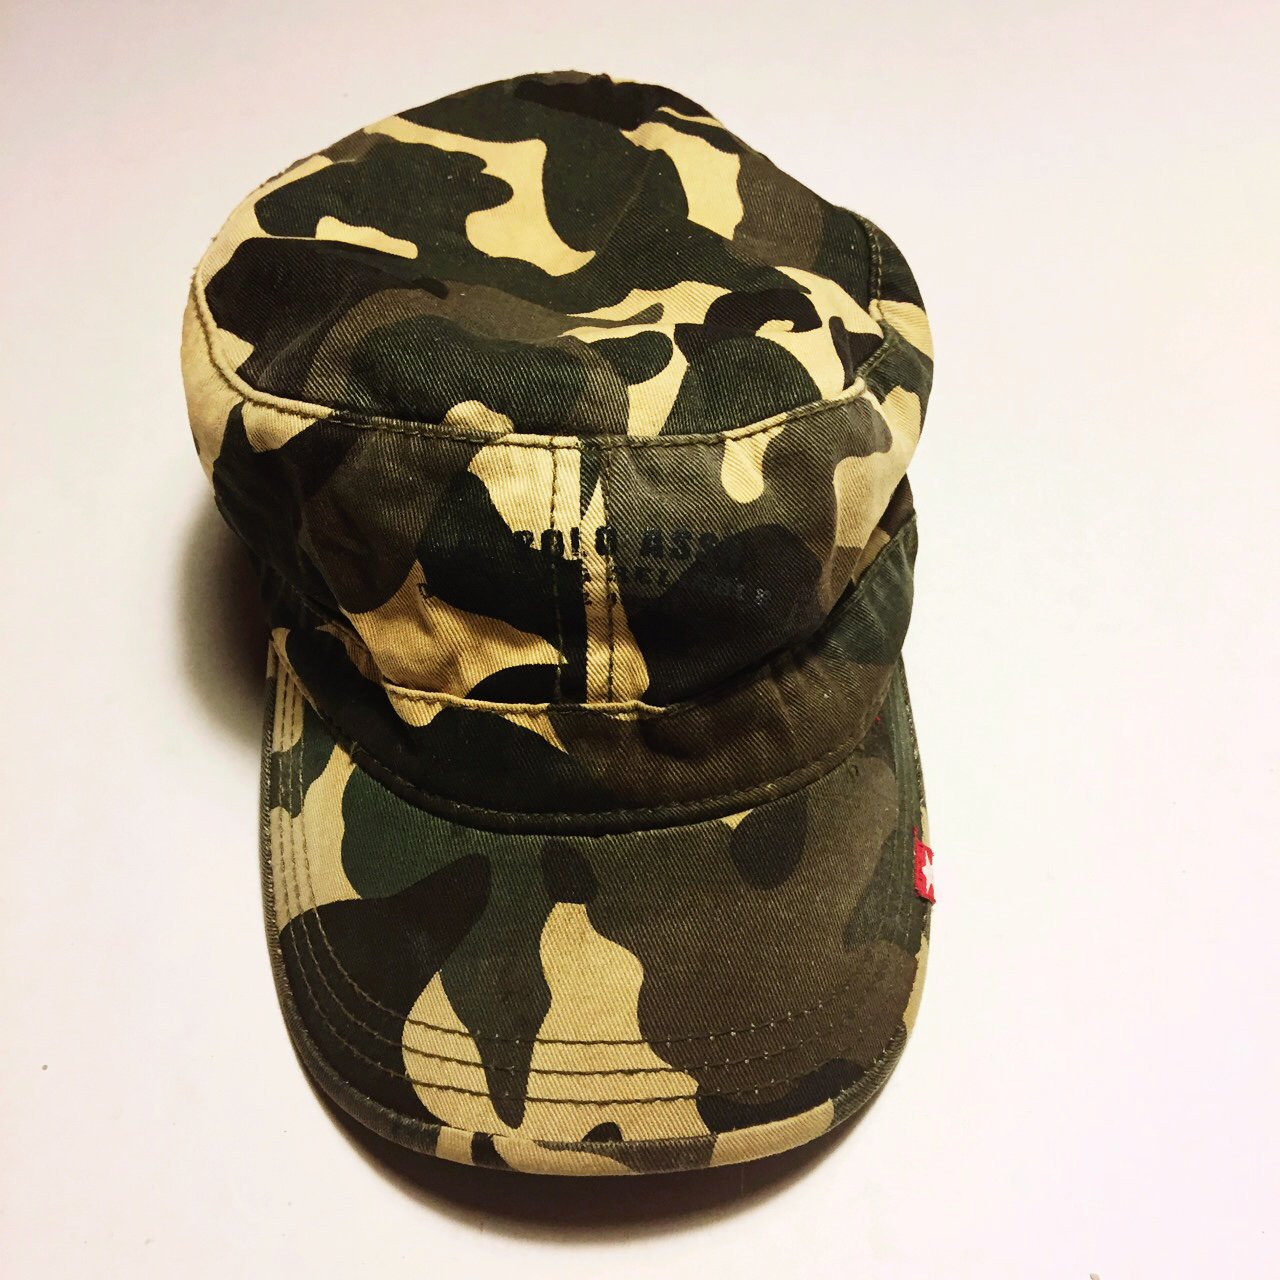 Vintage Polo Army Hat plus Shipping   5.00  hat  polo  army - Depop cdd24d67869